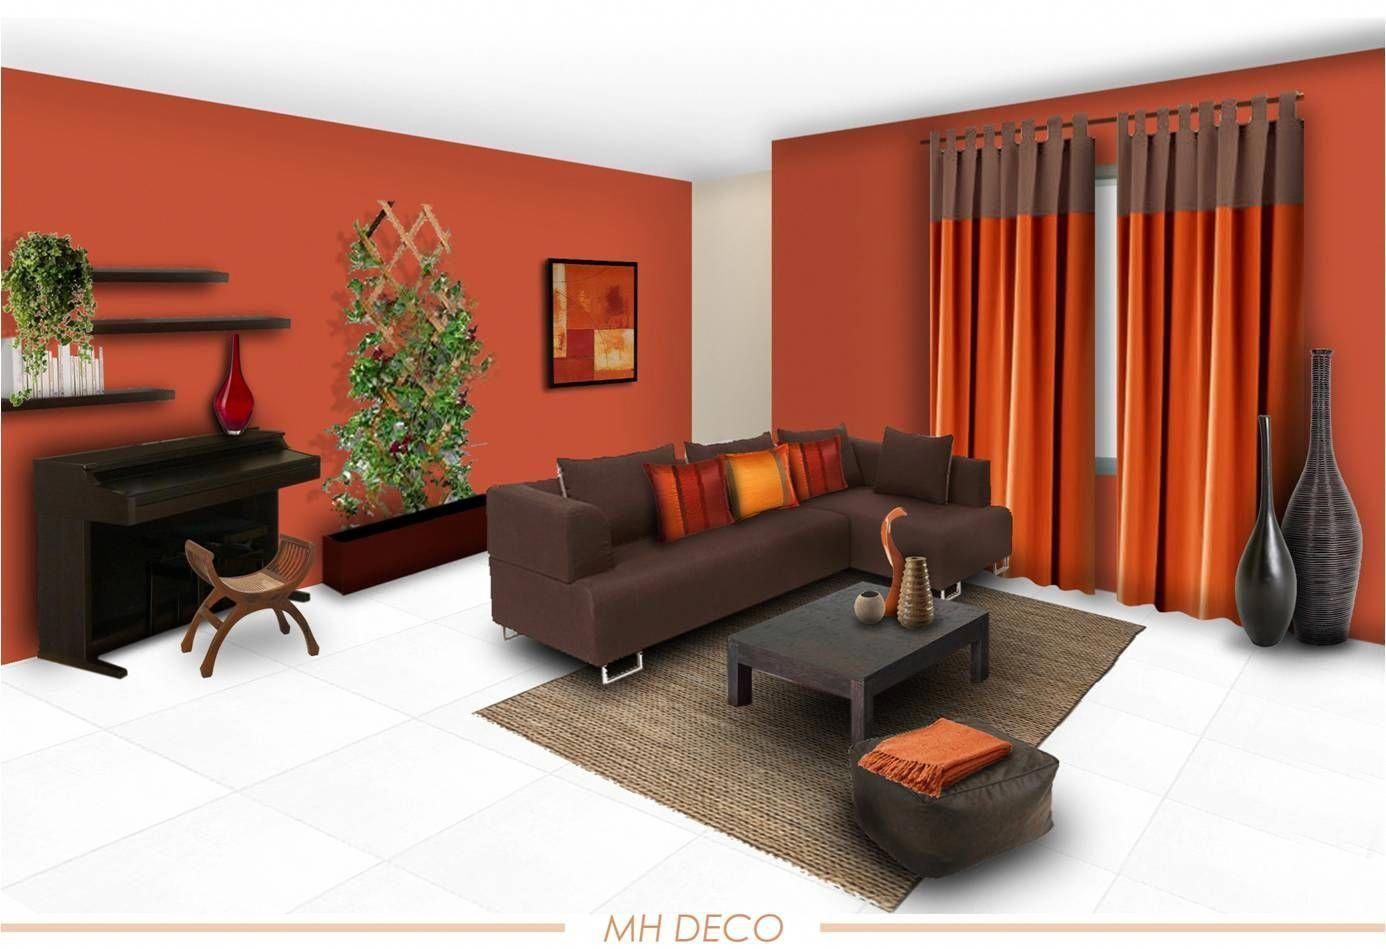 Brown Living Room Decor Ideas Saleprice 41 Living Room Orange Living Room Color Schemes Room Color Schemes #orange #living #room #paint